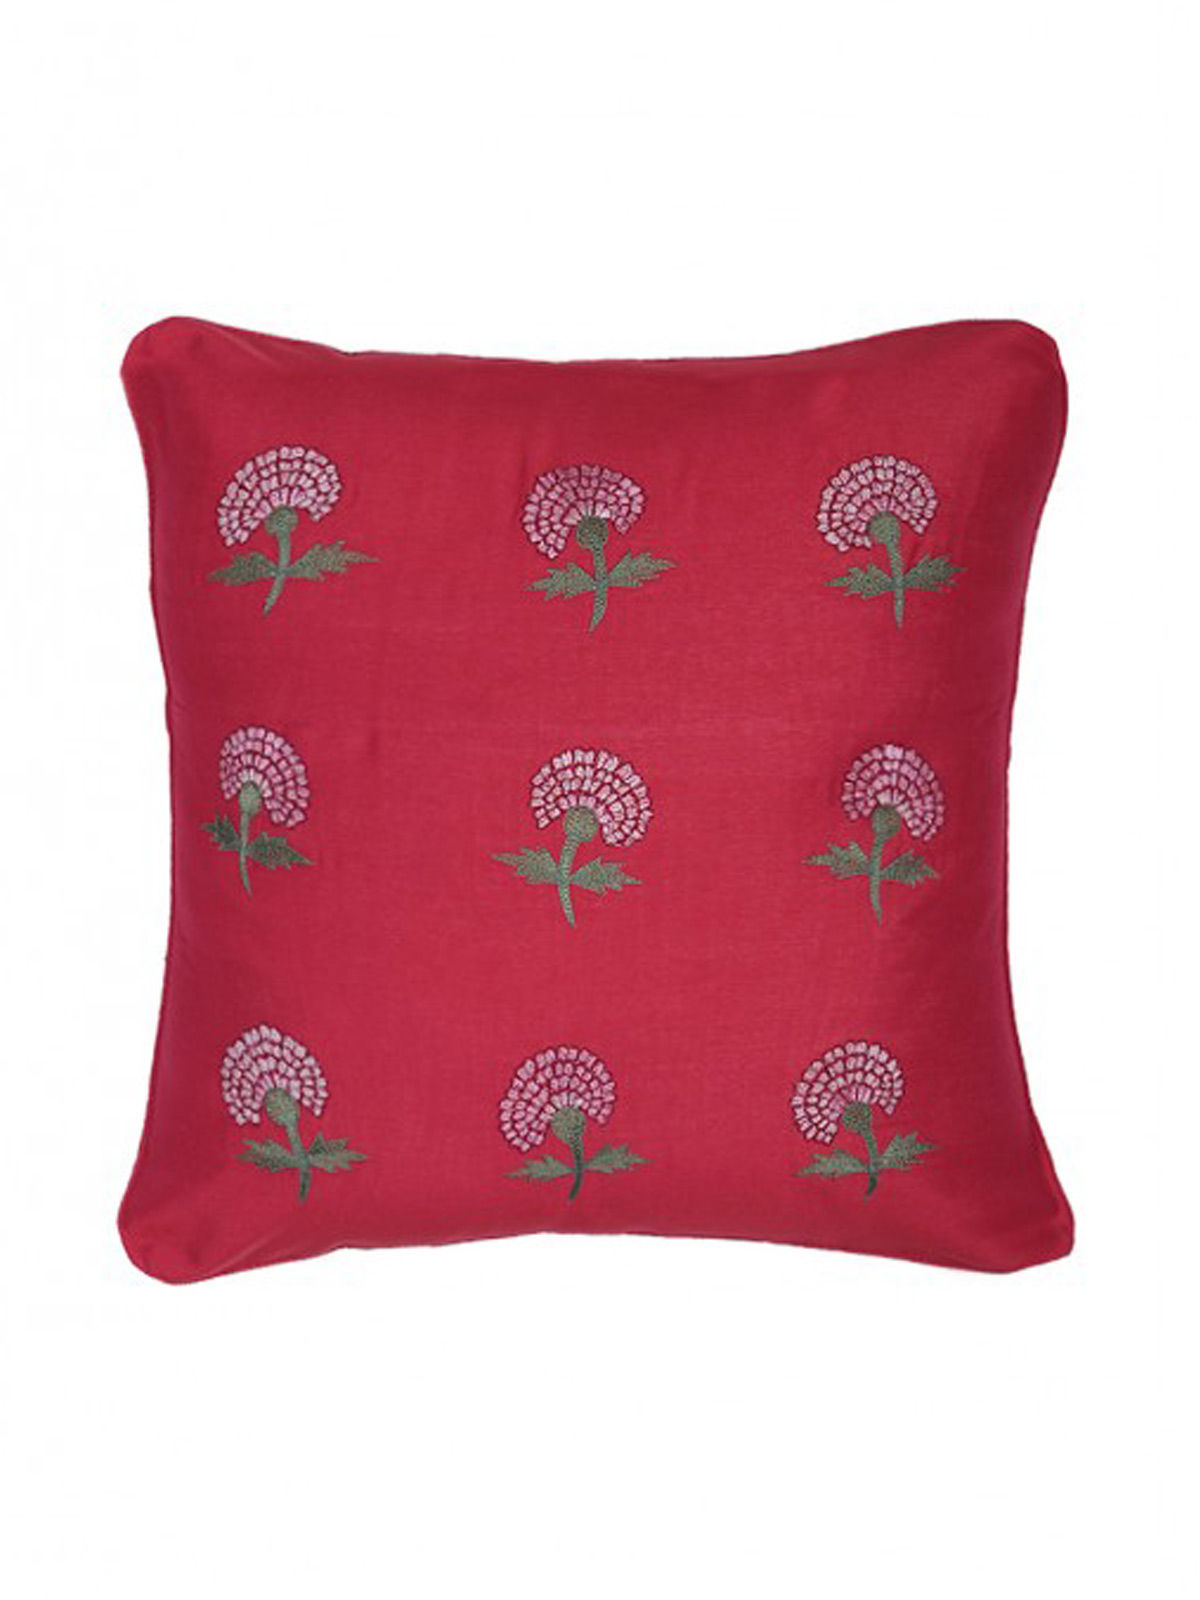 Red-White Embroidered Silk Cushion Cover with Marigold Motif